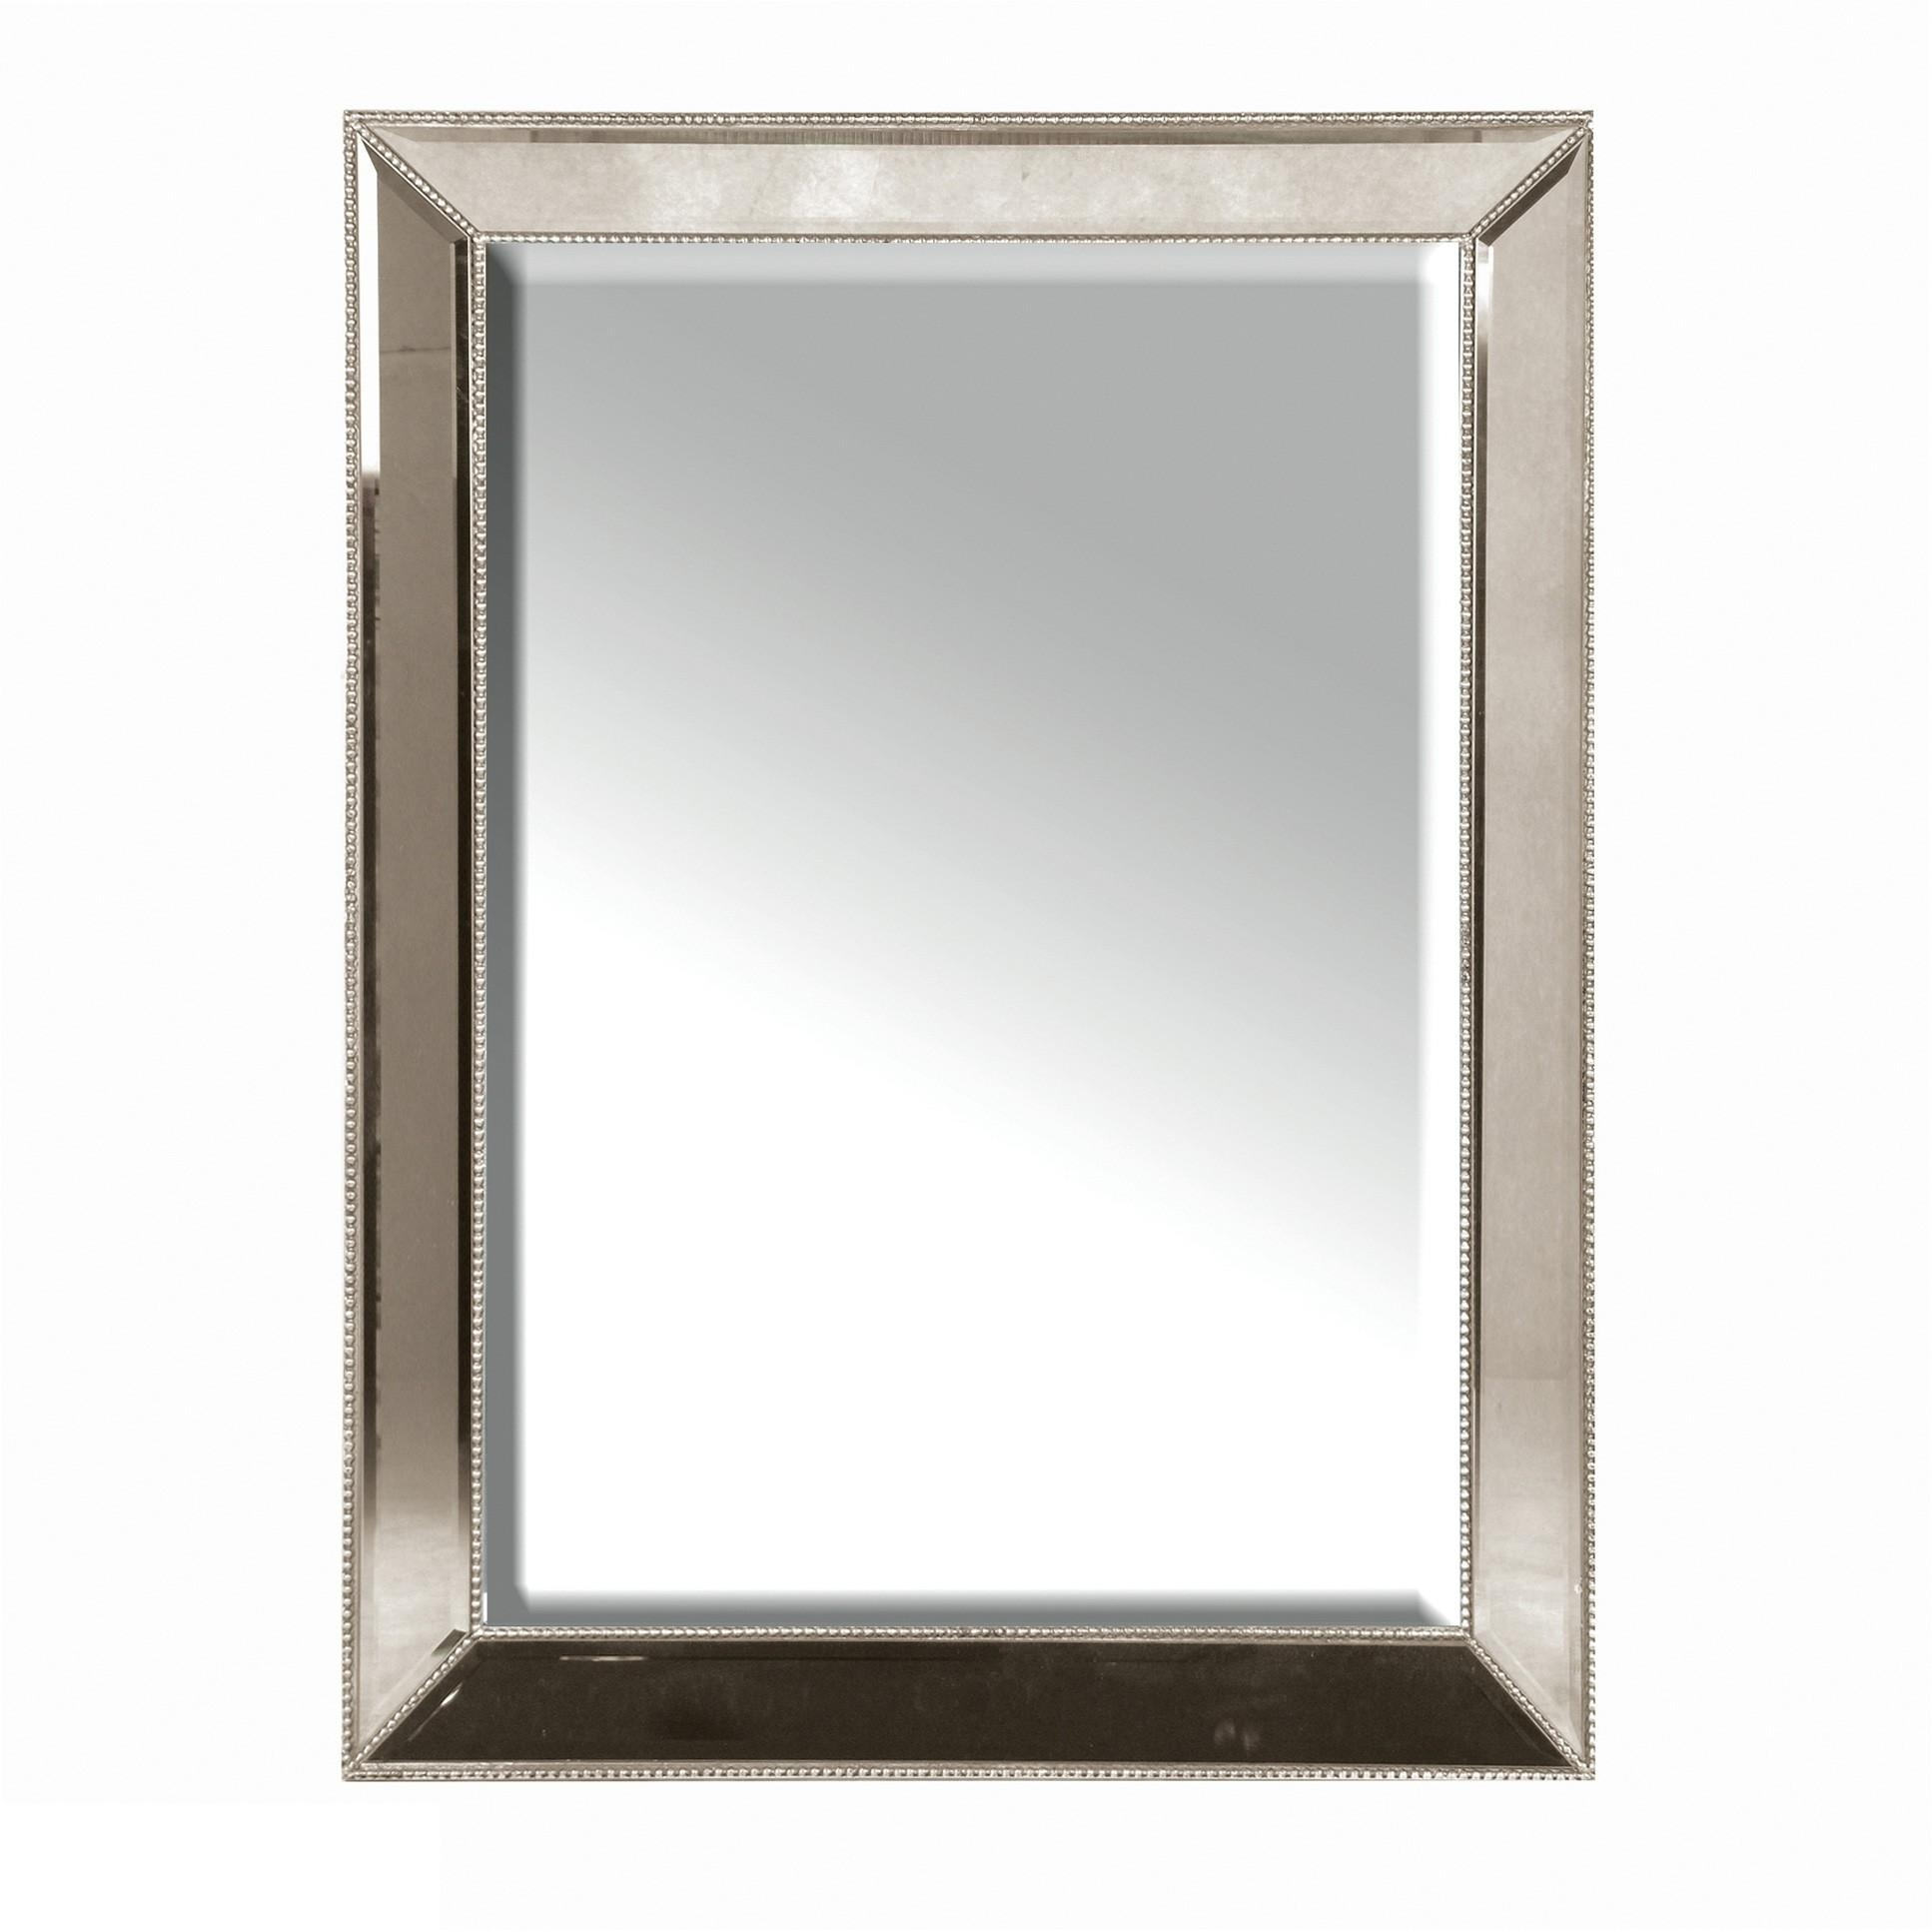 Interior: Vintage Venetian Mirror For Classic Interior Decor Within Venetian Style Wall Mirror (View 2 of 20)